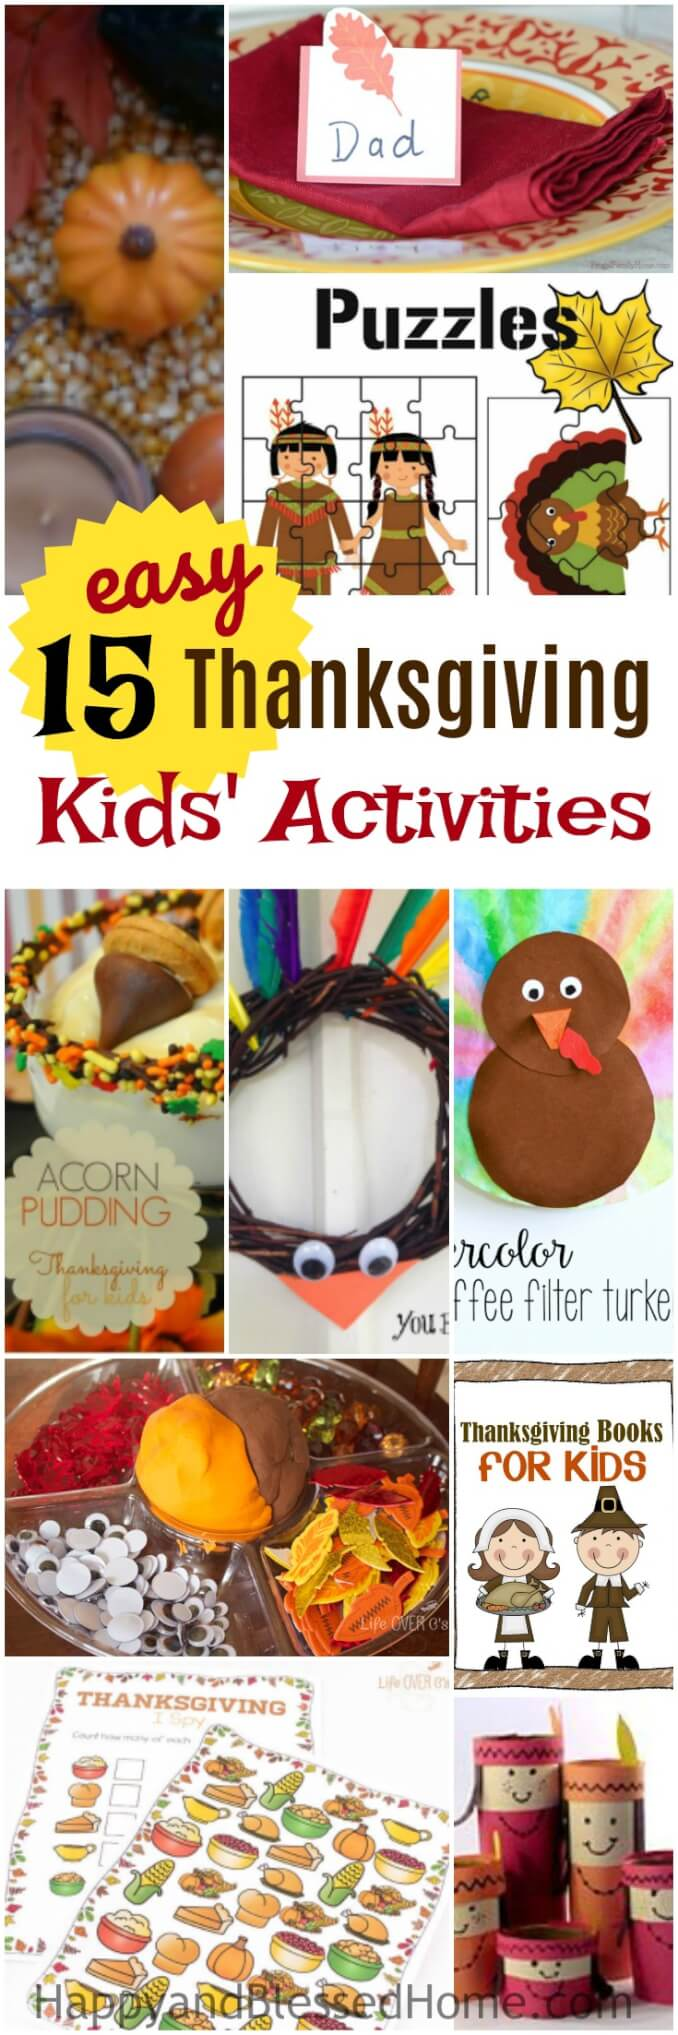 15 Easy Thanksgiving Kids Activities with craft free printables and sensory play